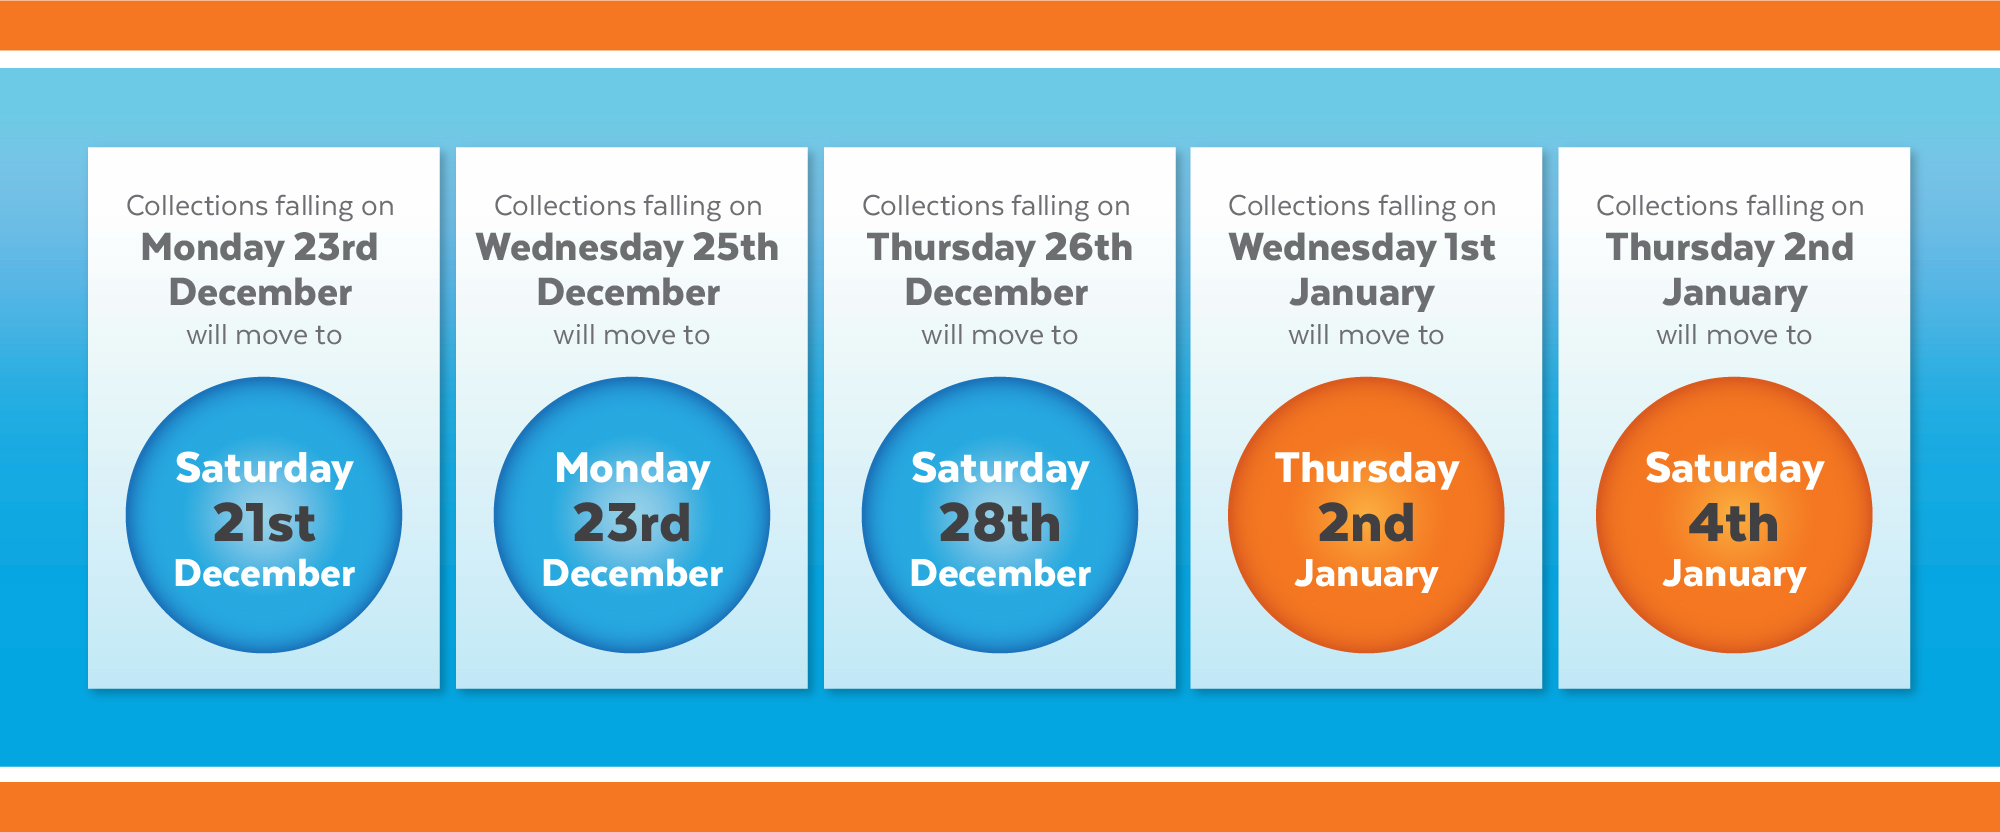 Christmas Collection Days 2019 - AES